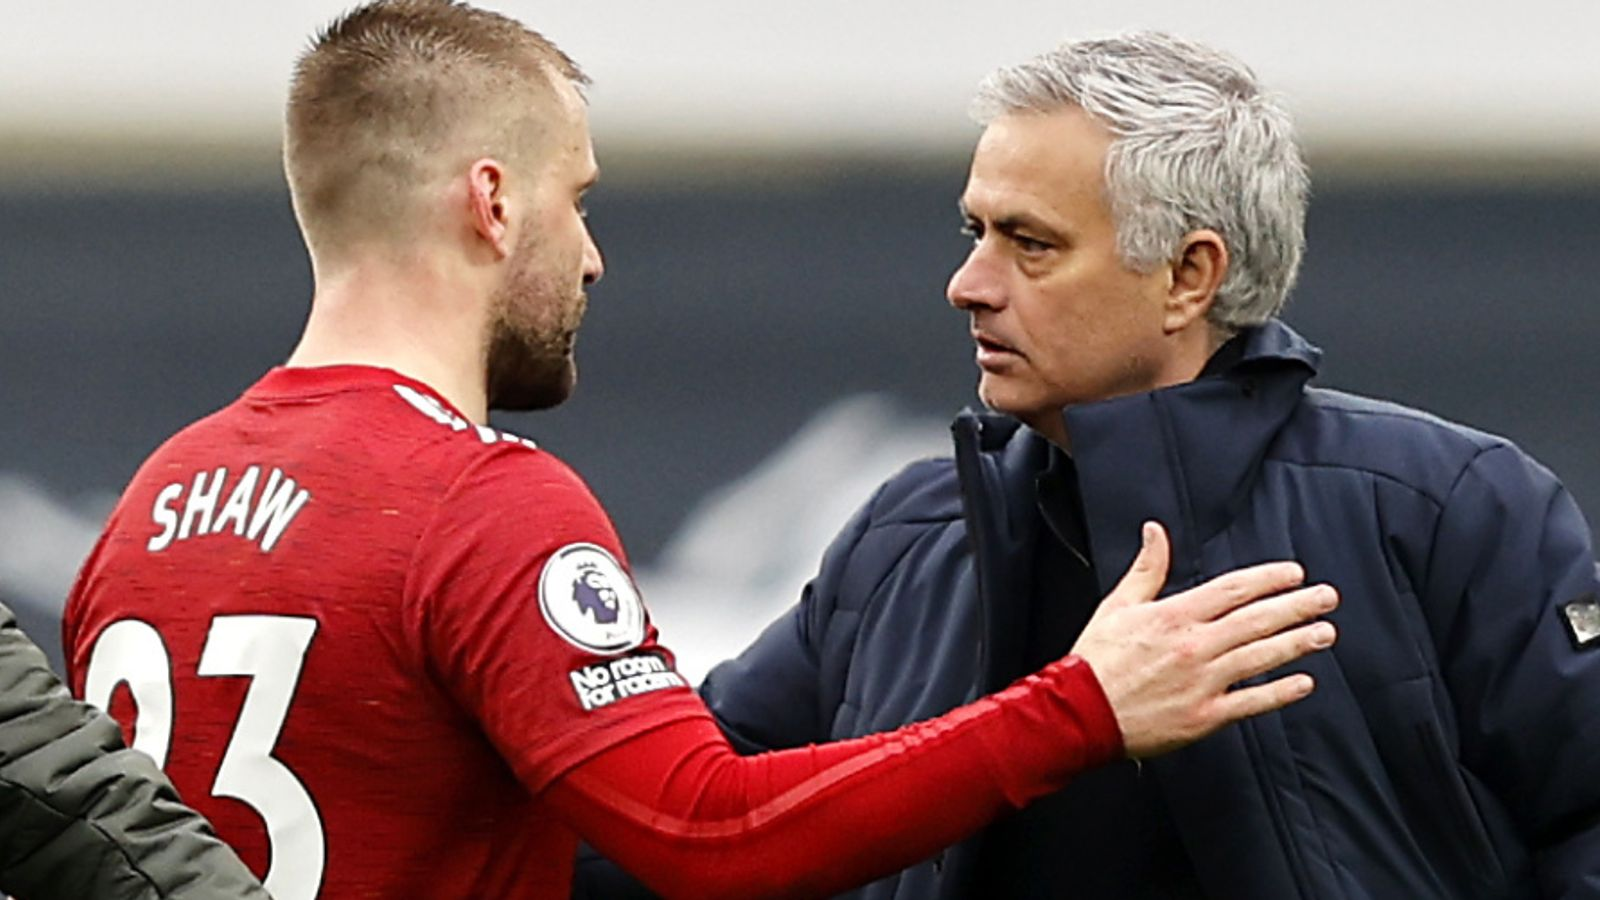 England's Luke Shaw bemused by Jose Mourinho's continued criticism: 'I am trying to move on but he can't'